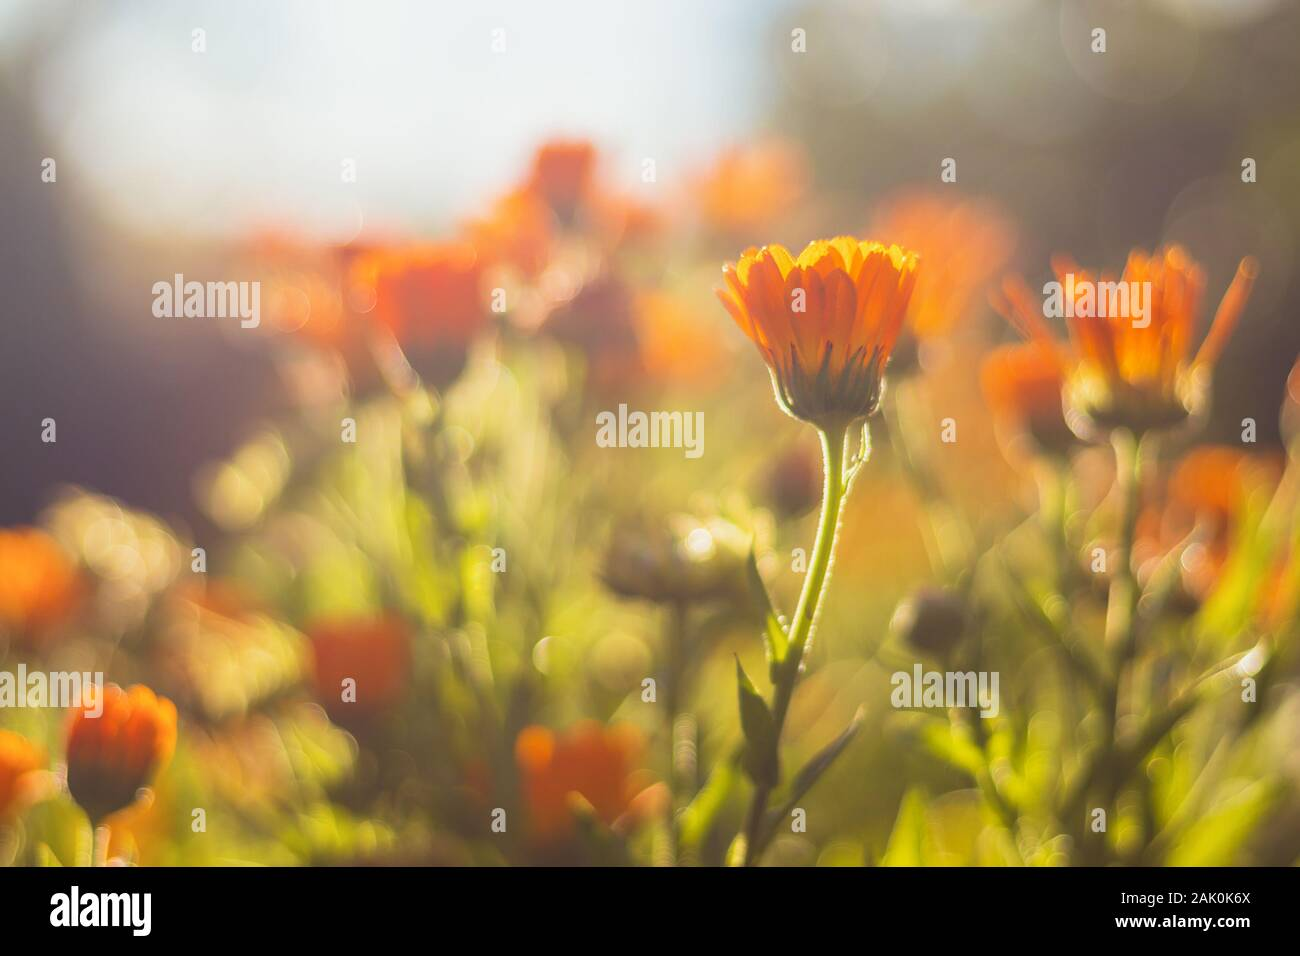 Marigold - beautiful orange flowers, in the garden, close up view, bright sunny day, blurred background Stock Photo